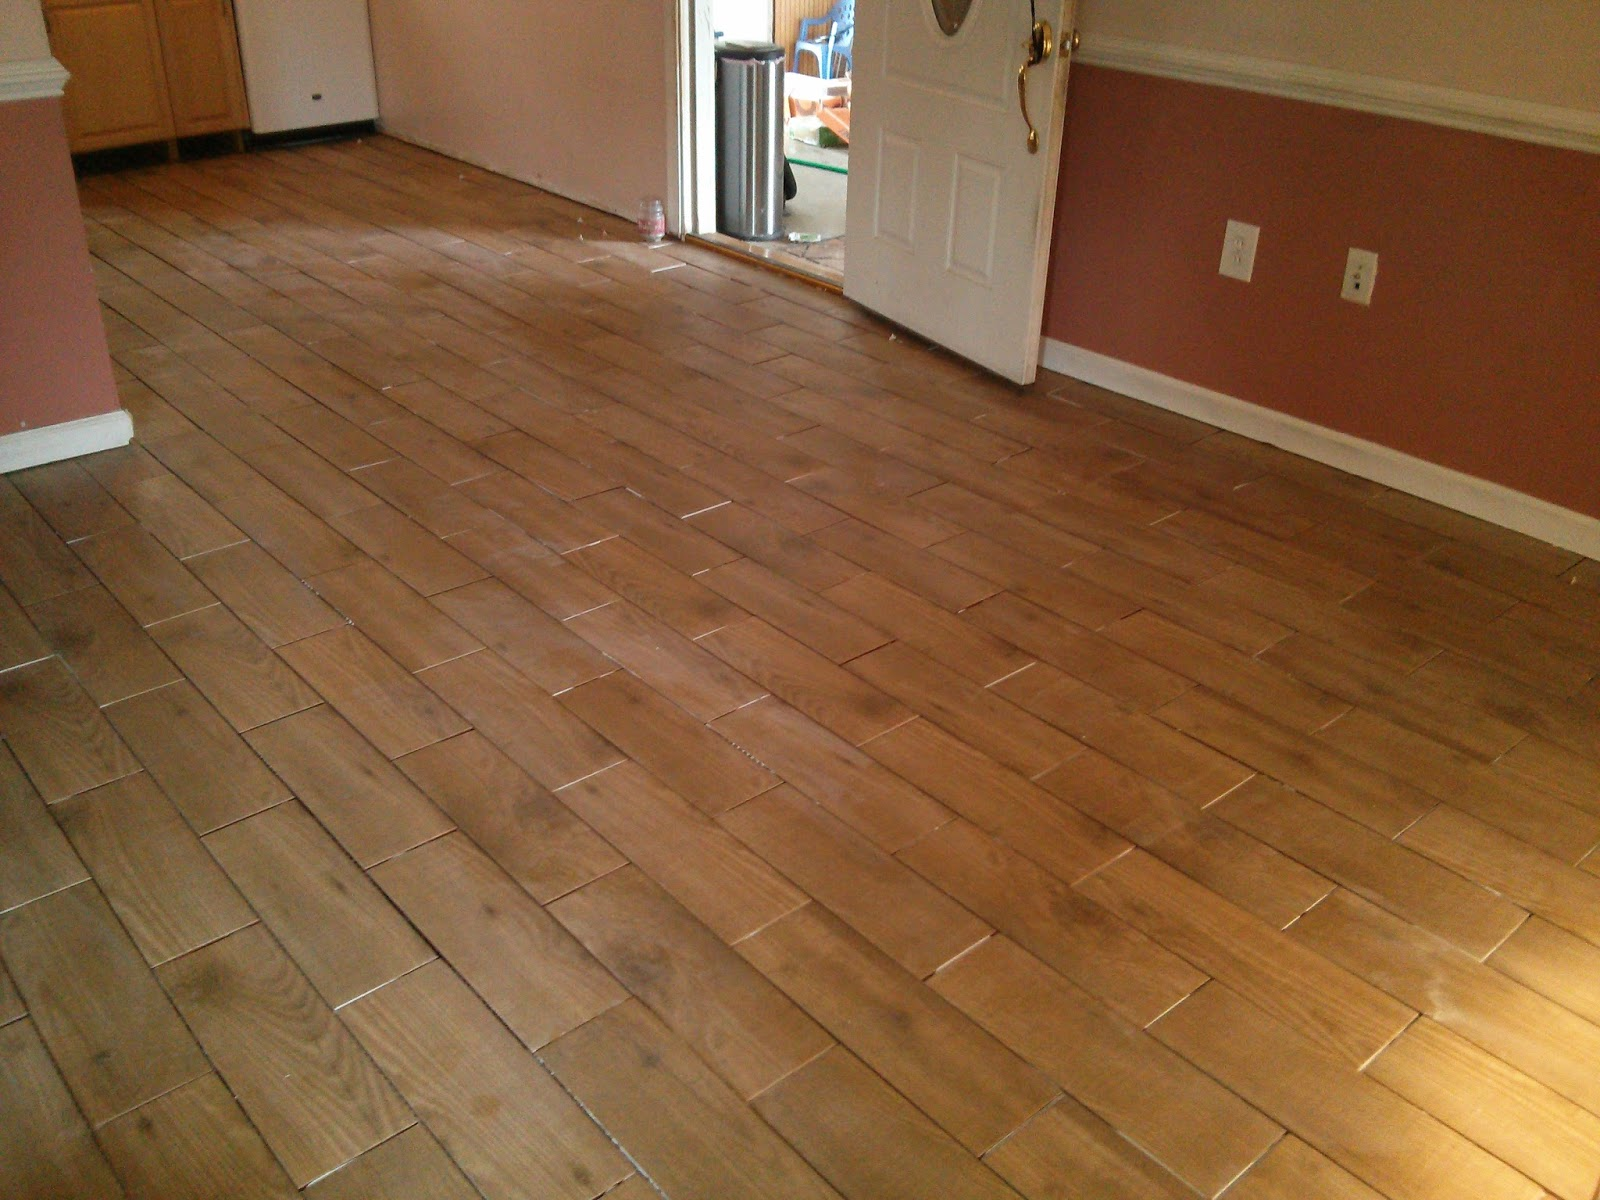 Floor installation photos wood look porcelain tile in for Wooden floor tiles